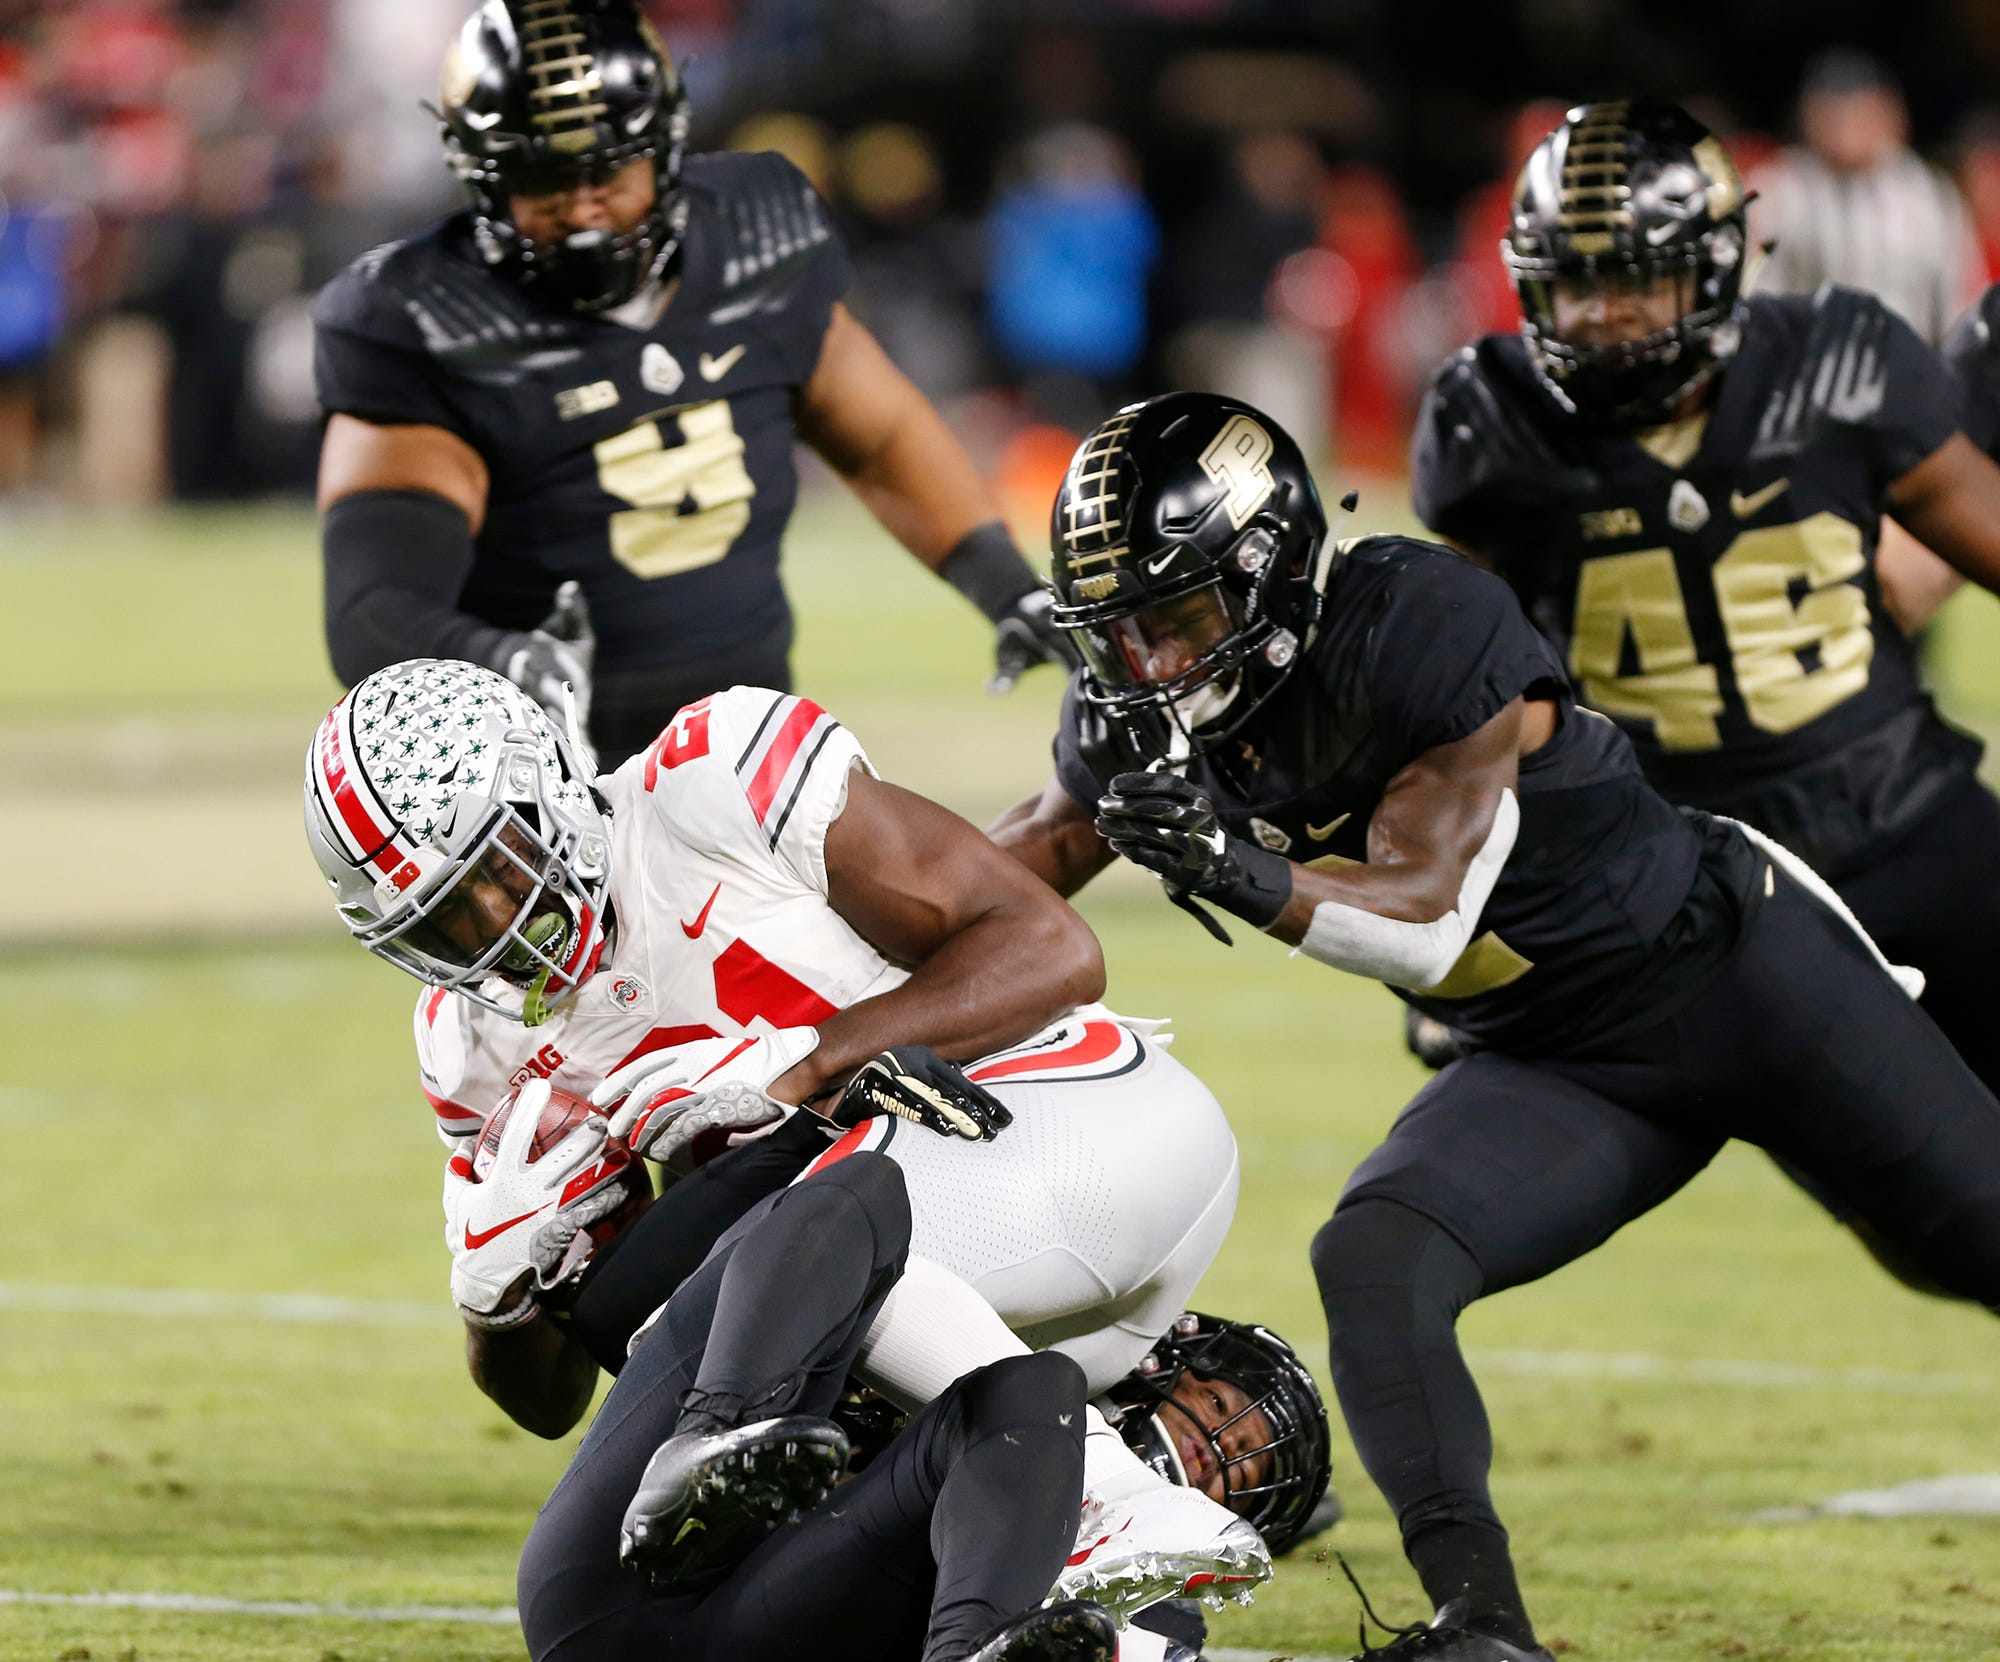 Parris Campbell Jr. of Ohio State is brought down by Simeon Smiley and the Purdue defense Saturday, October 20, 2018, at Ross-Ade Stadium.